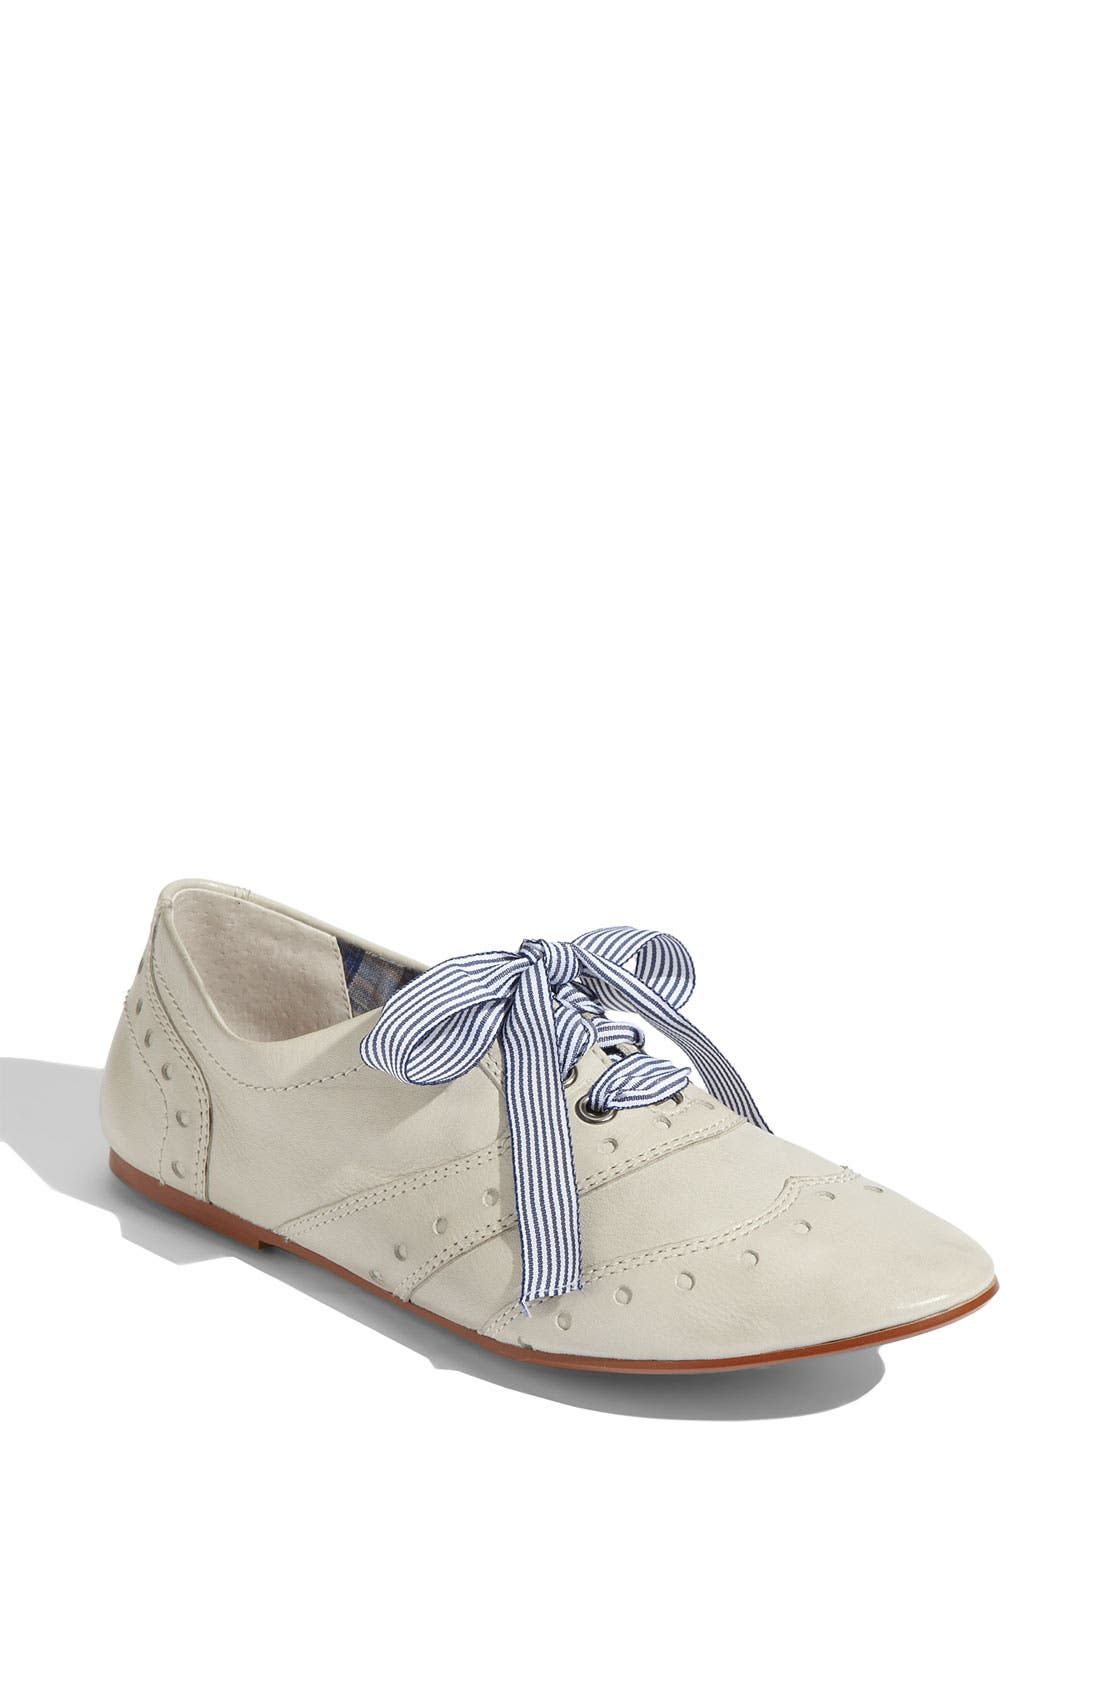 Main Image - BP. 'Aiden' Oxford Flat